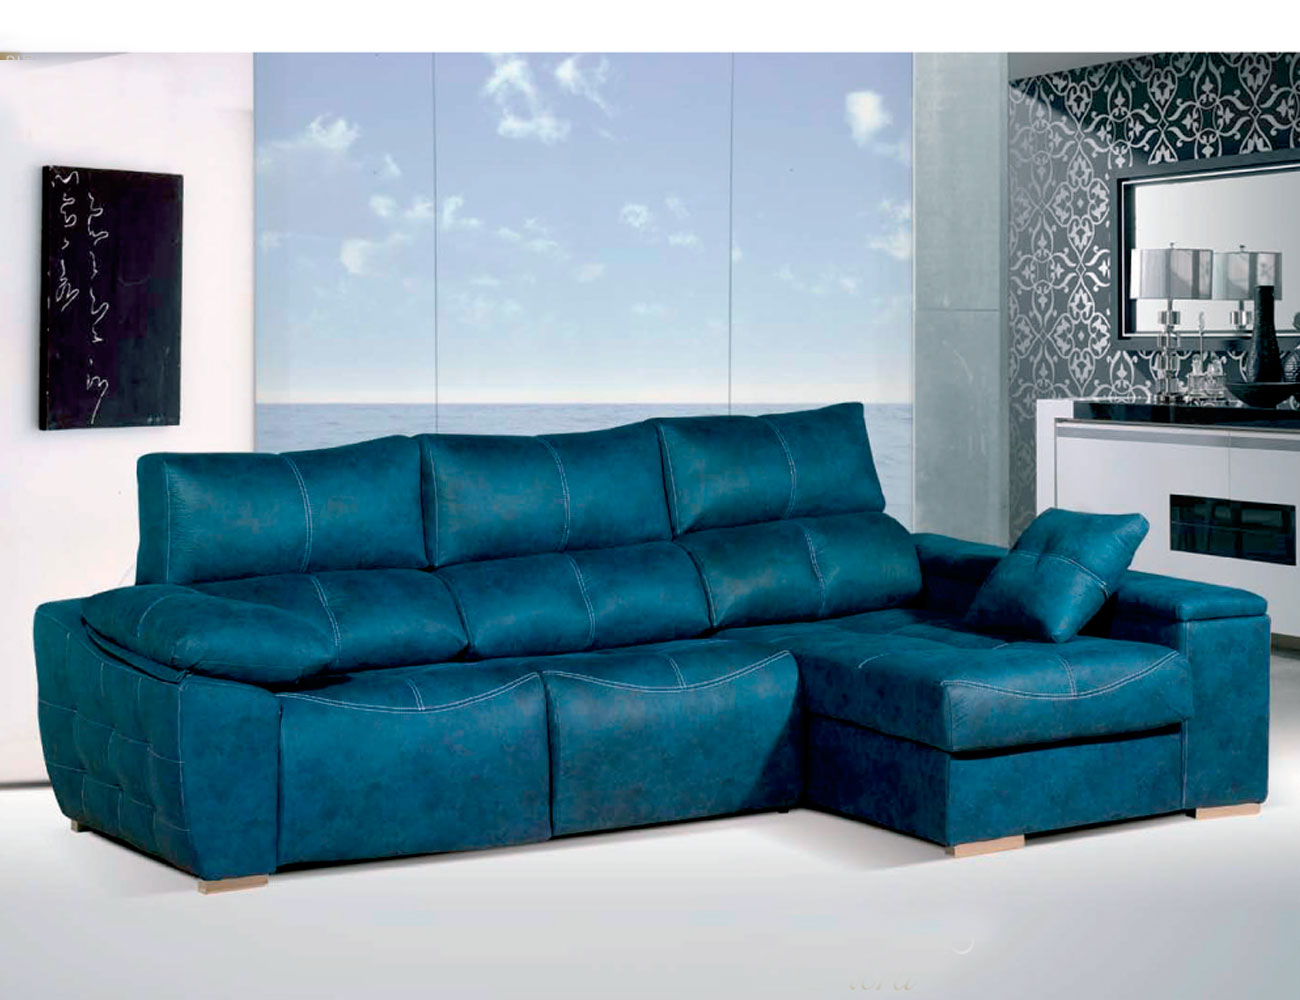 Sofa chaiselongue relax 2 motores anti manchas turquesa20